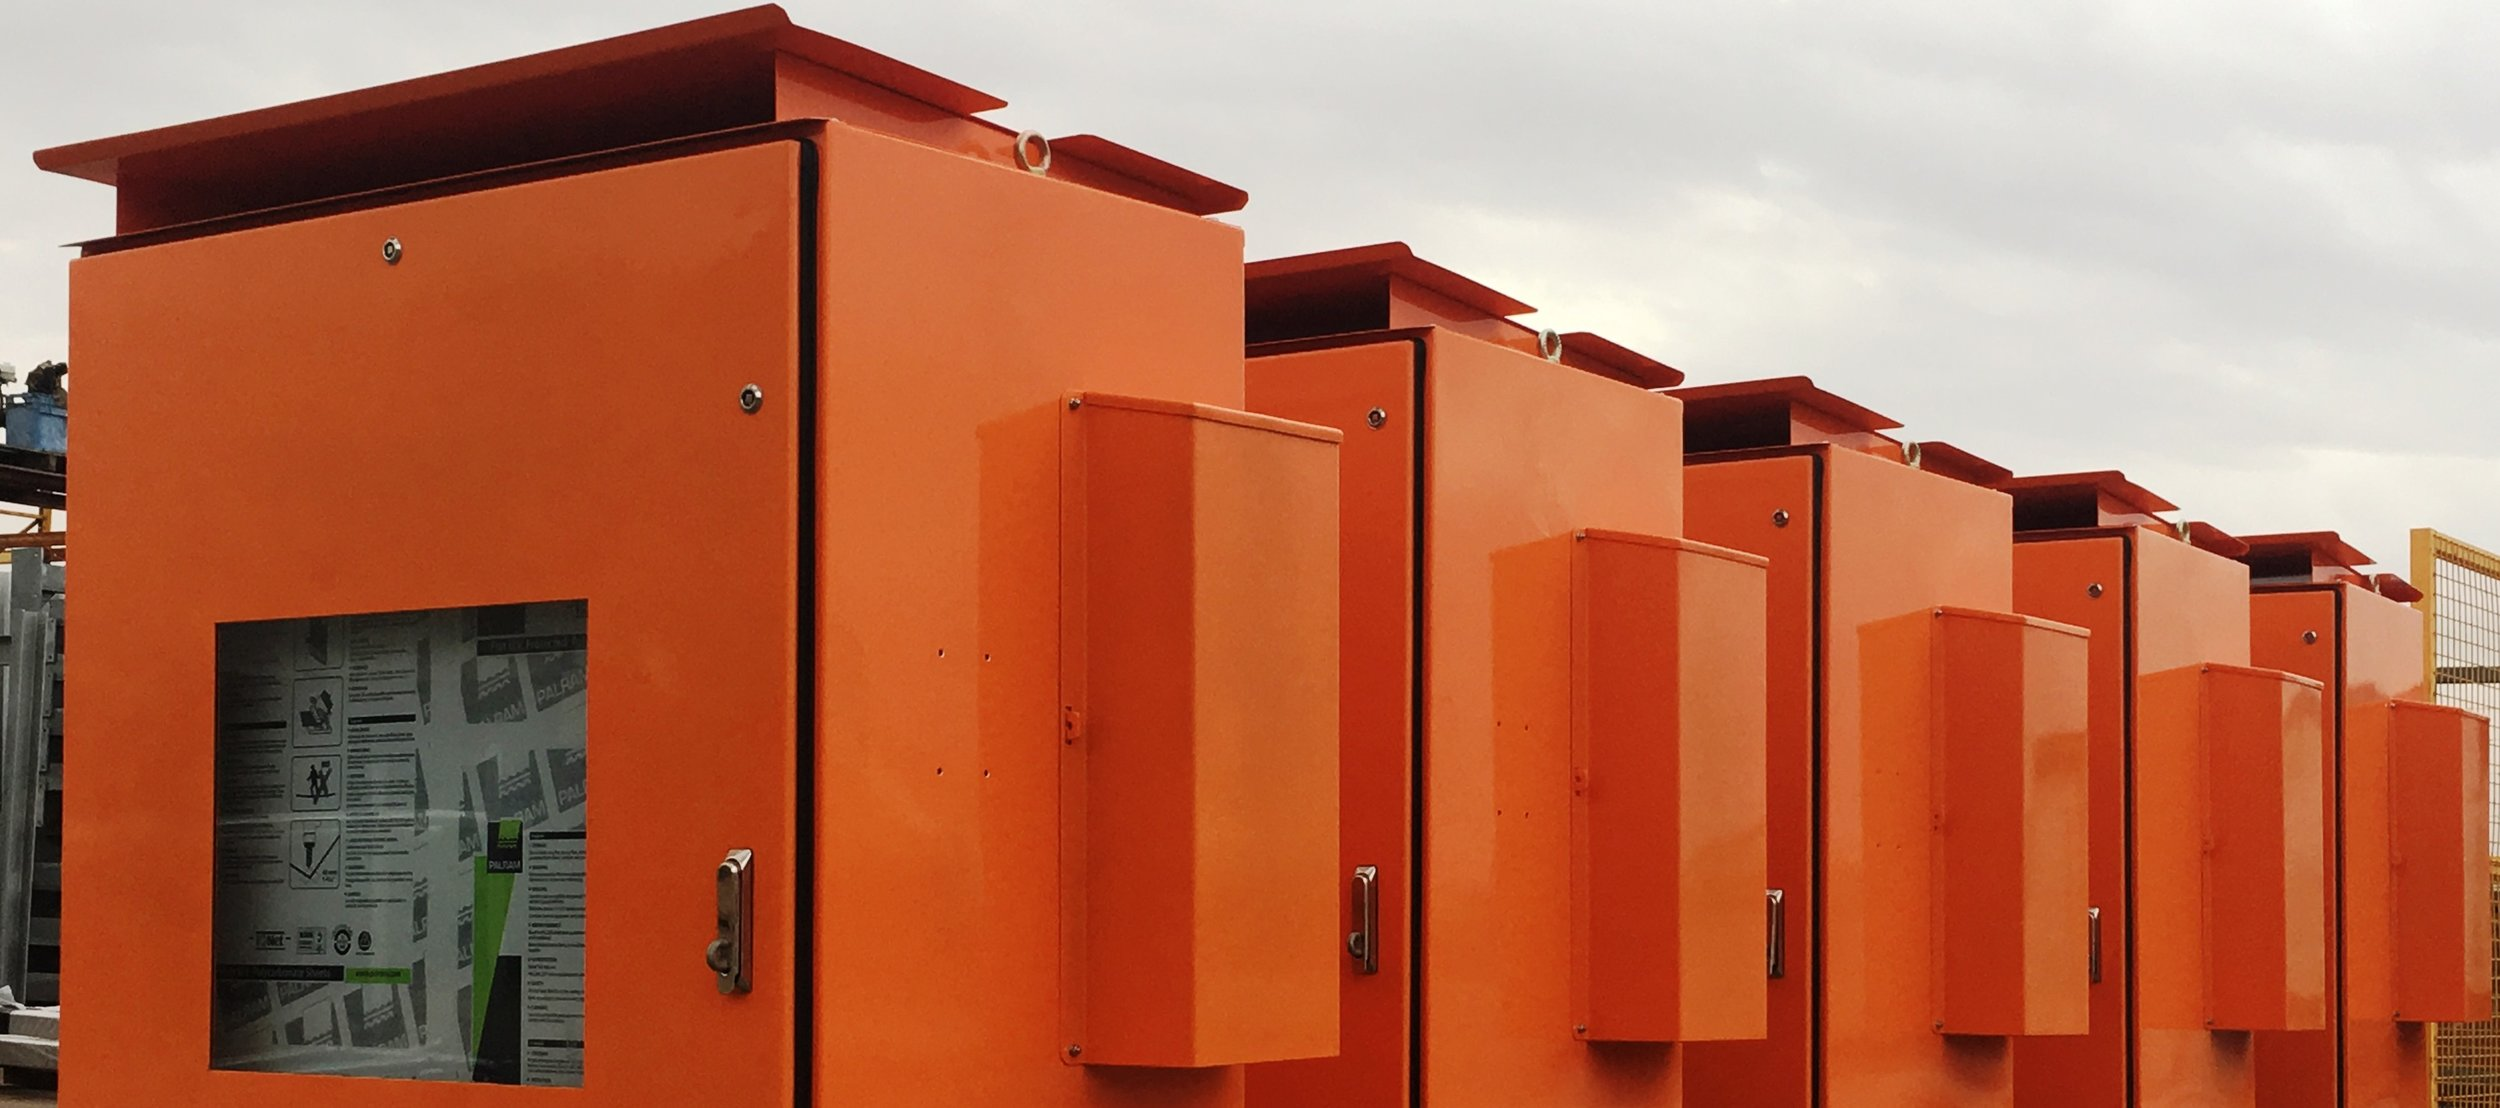 Rio Tinto stacker and reclaimer isolator switchboard - Copy.JPG